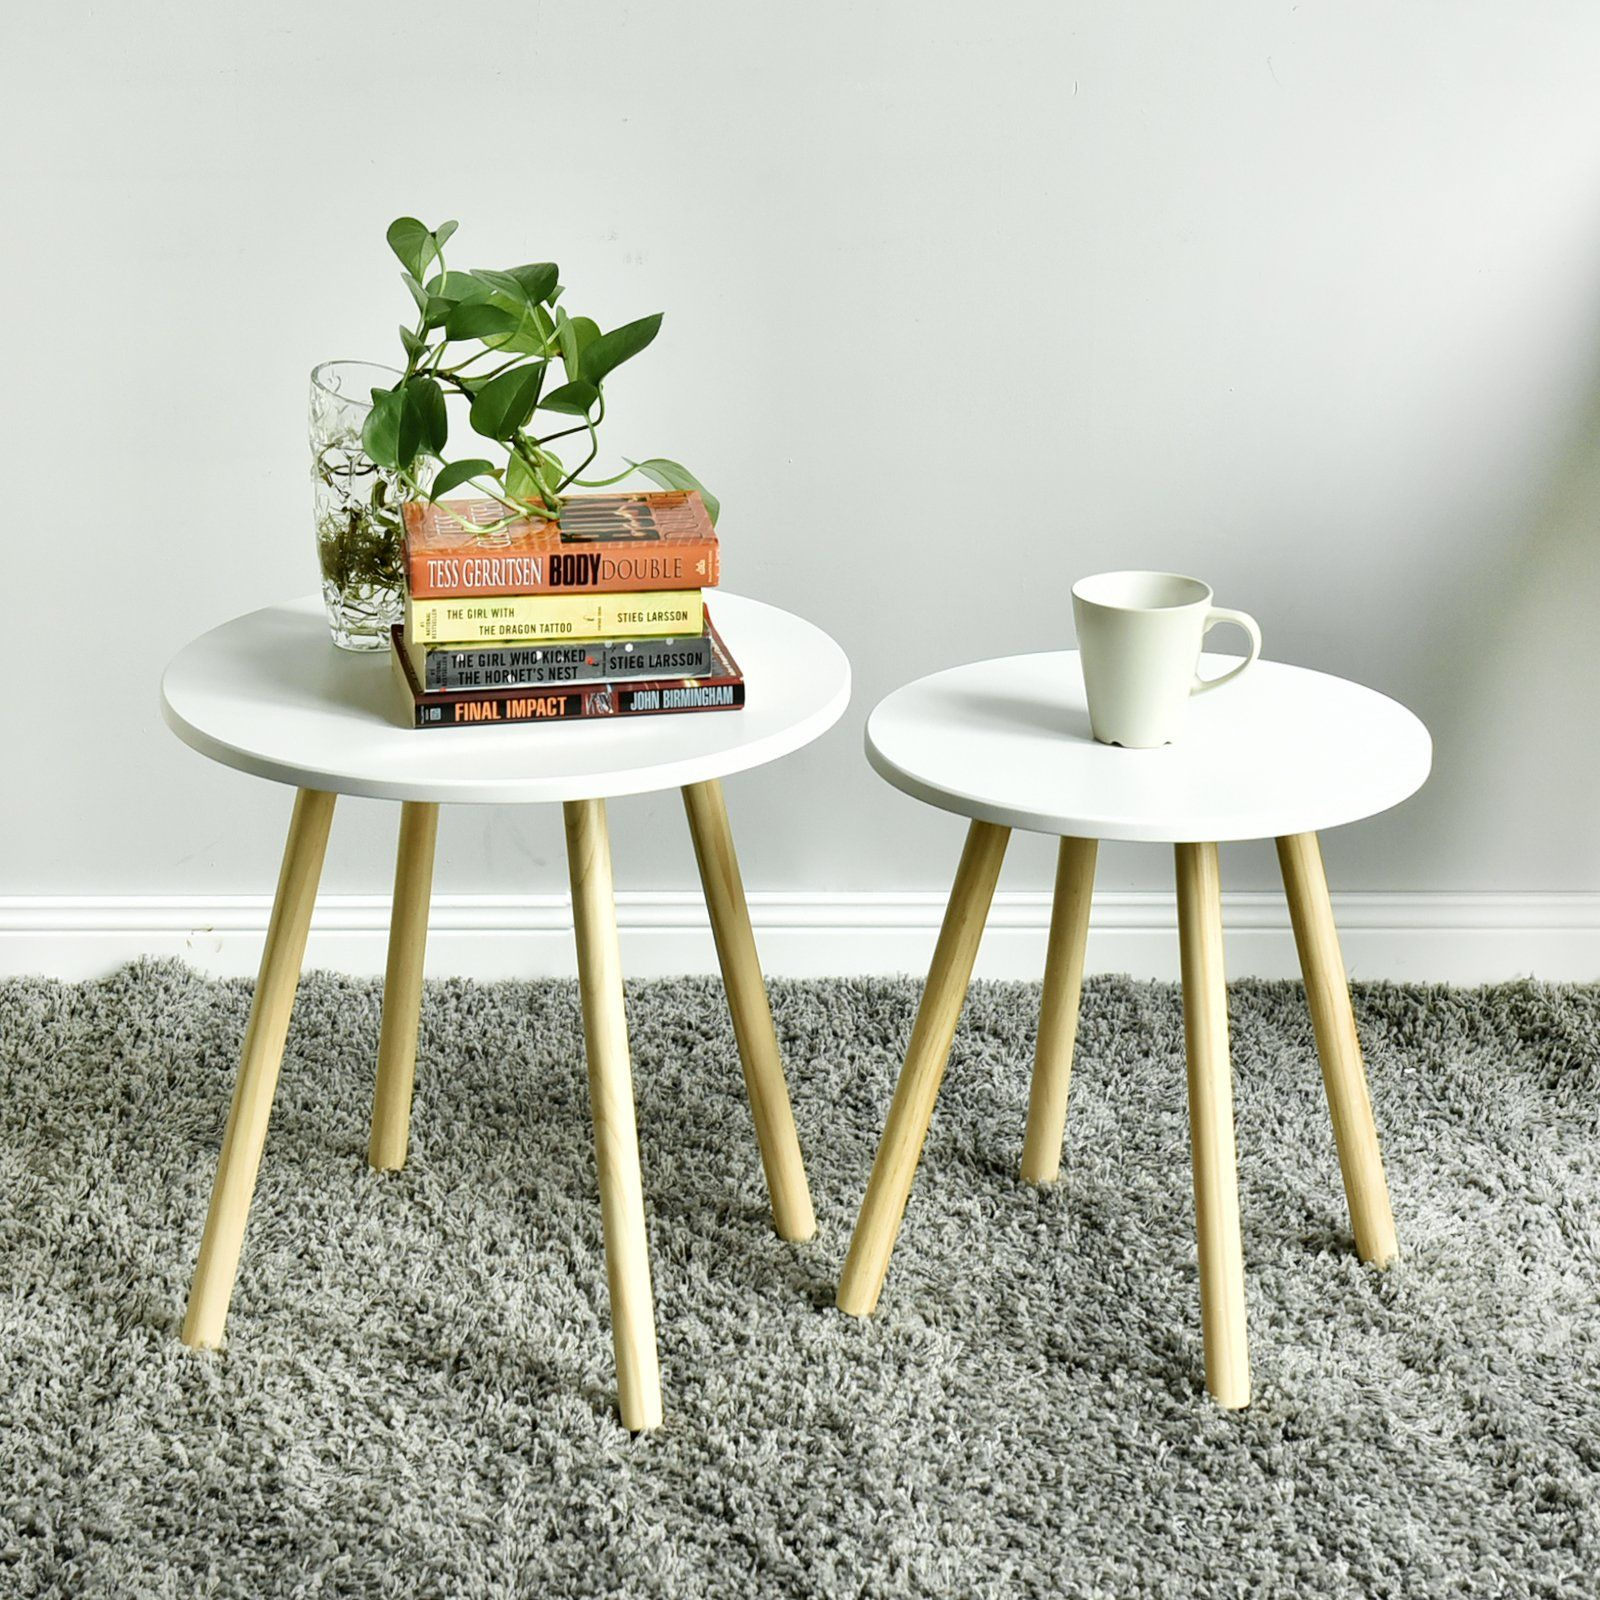 Welland Wood End Table Modern Round Coffee Table Environmentally Friendly Living Room Side Table Round Coffee Table Modern Coffee Table Living Room Side Table [ 1600 x 1600 Pixel ]